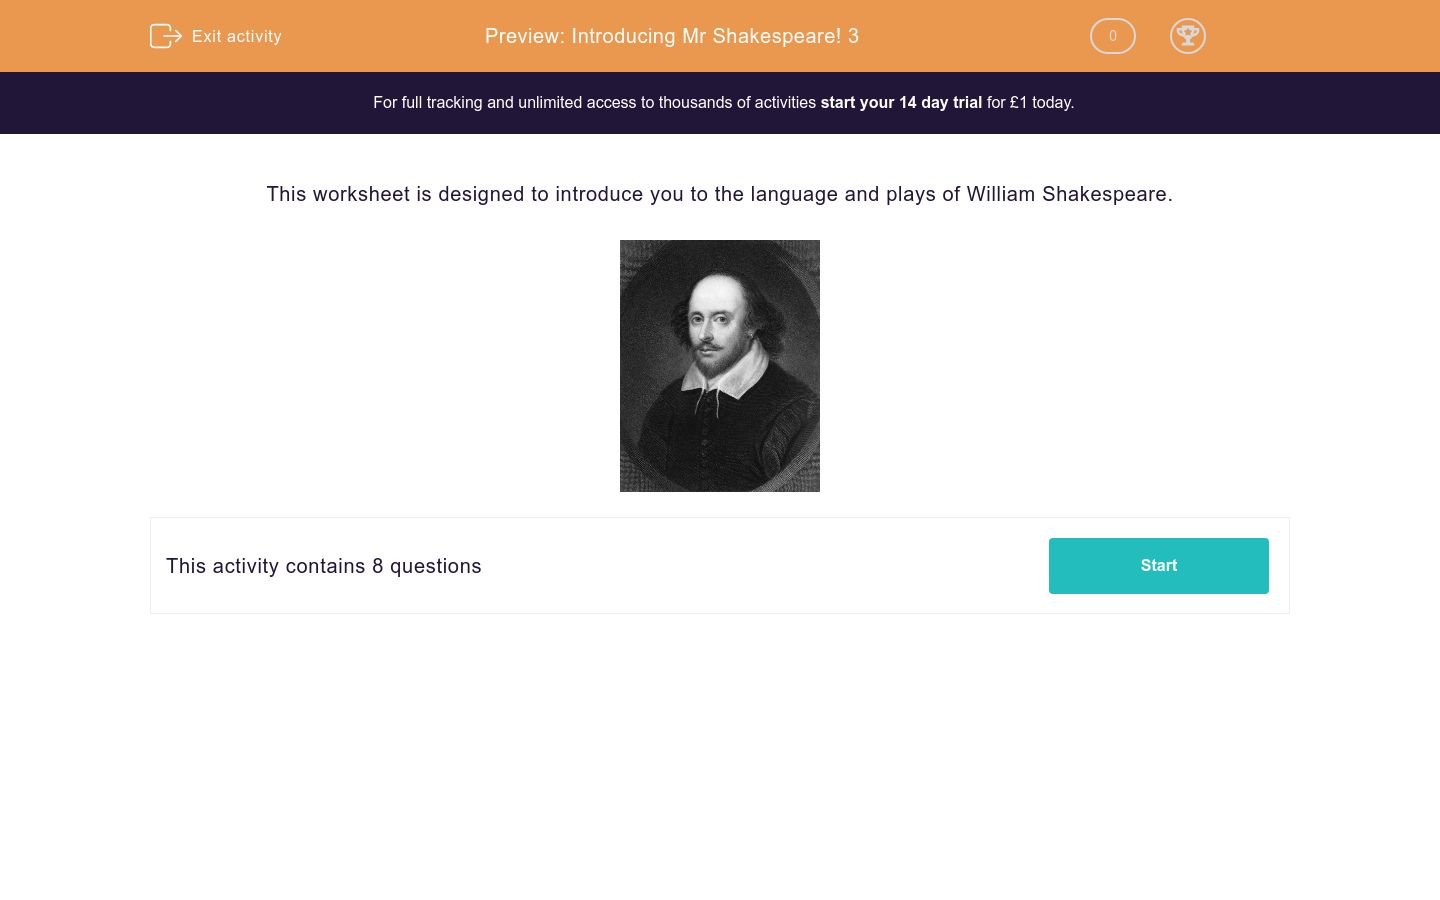 'Introducing Mr Shakespeare! 3' worksheet